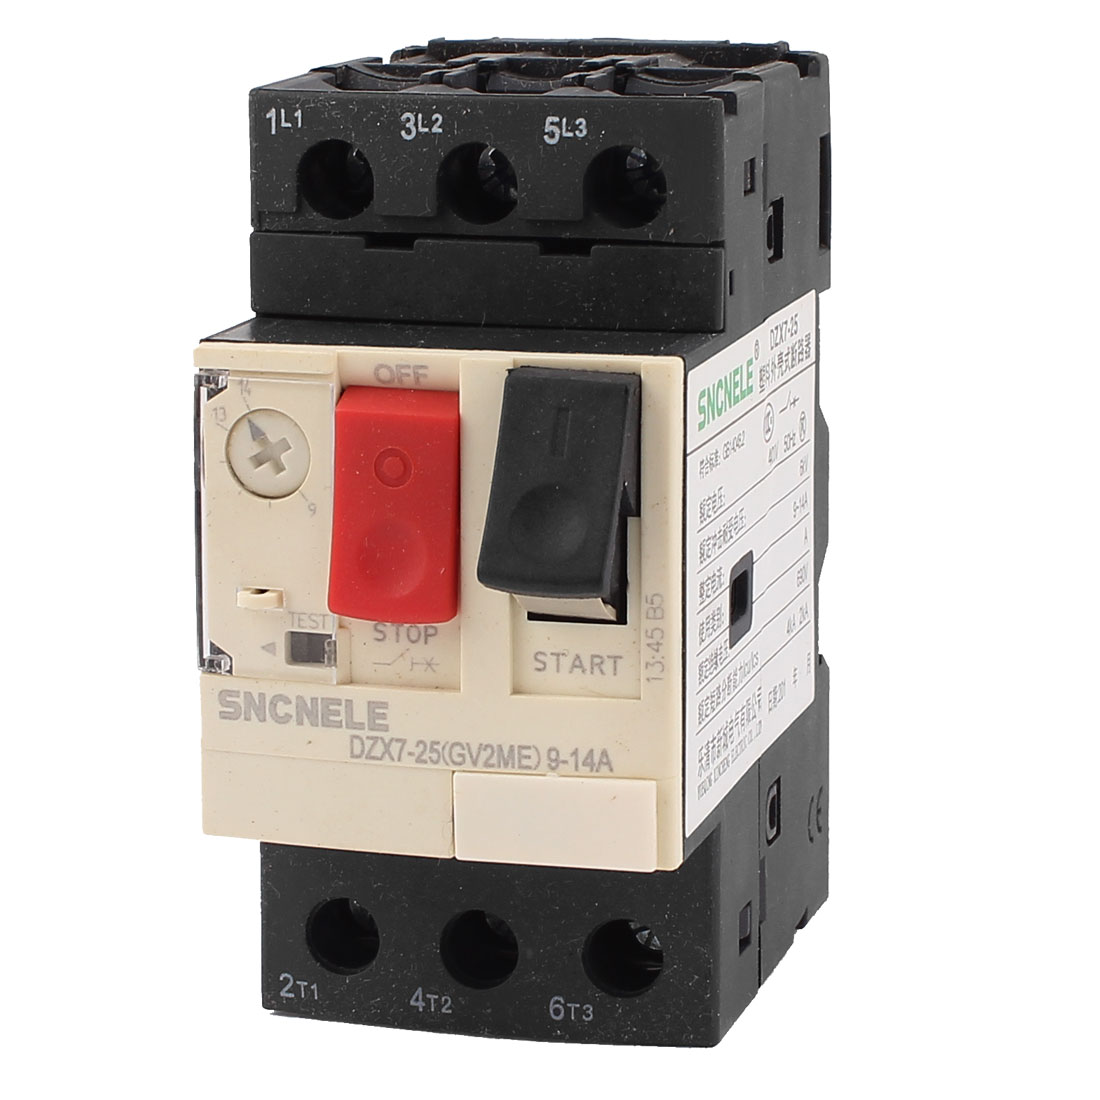 690V 6KV 9-14A 3 Phase Thermal Magnetic Motor Protection Circuit Breaker